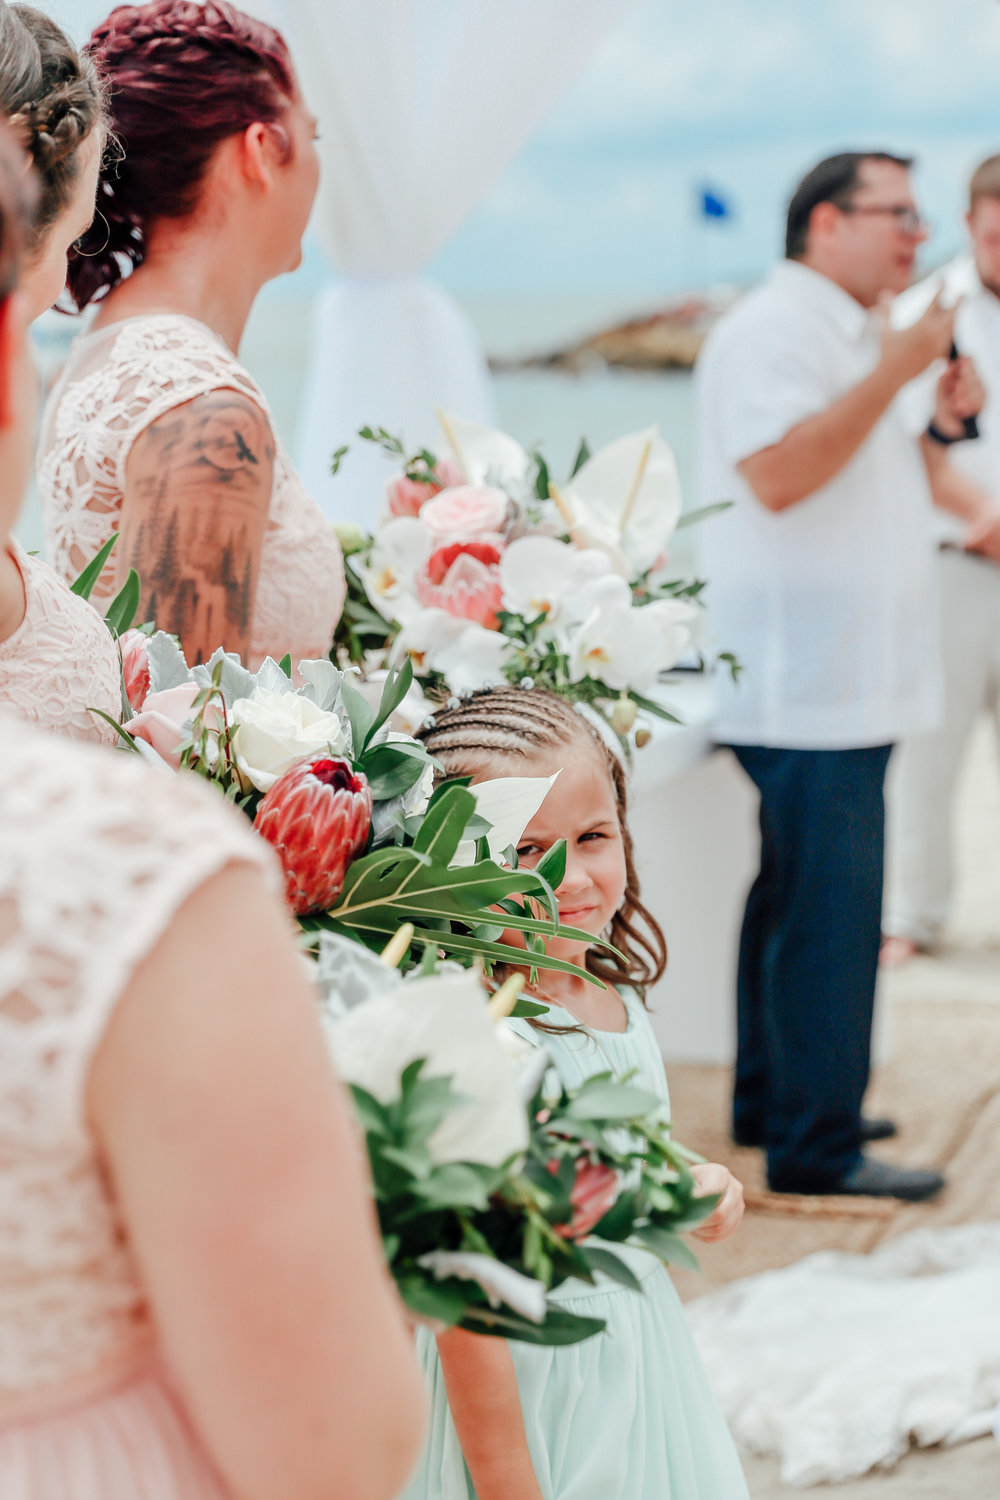 Tiffany and Ryan - Puerto Vallarta Wedding Photographer - 53.jpg